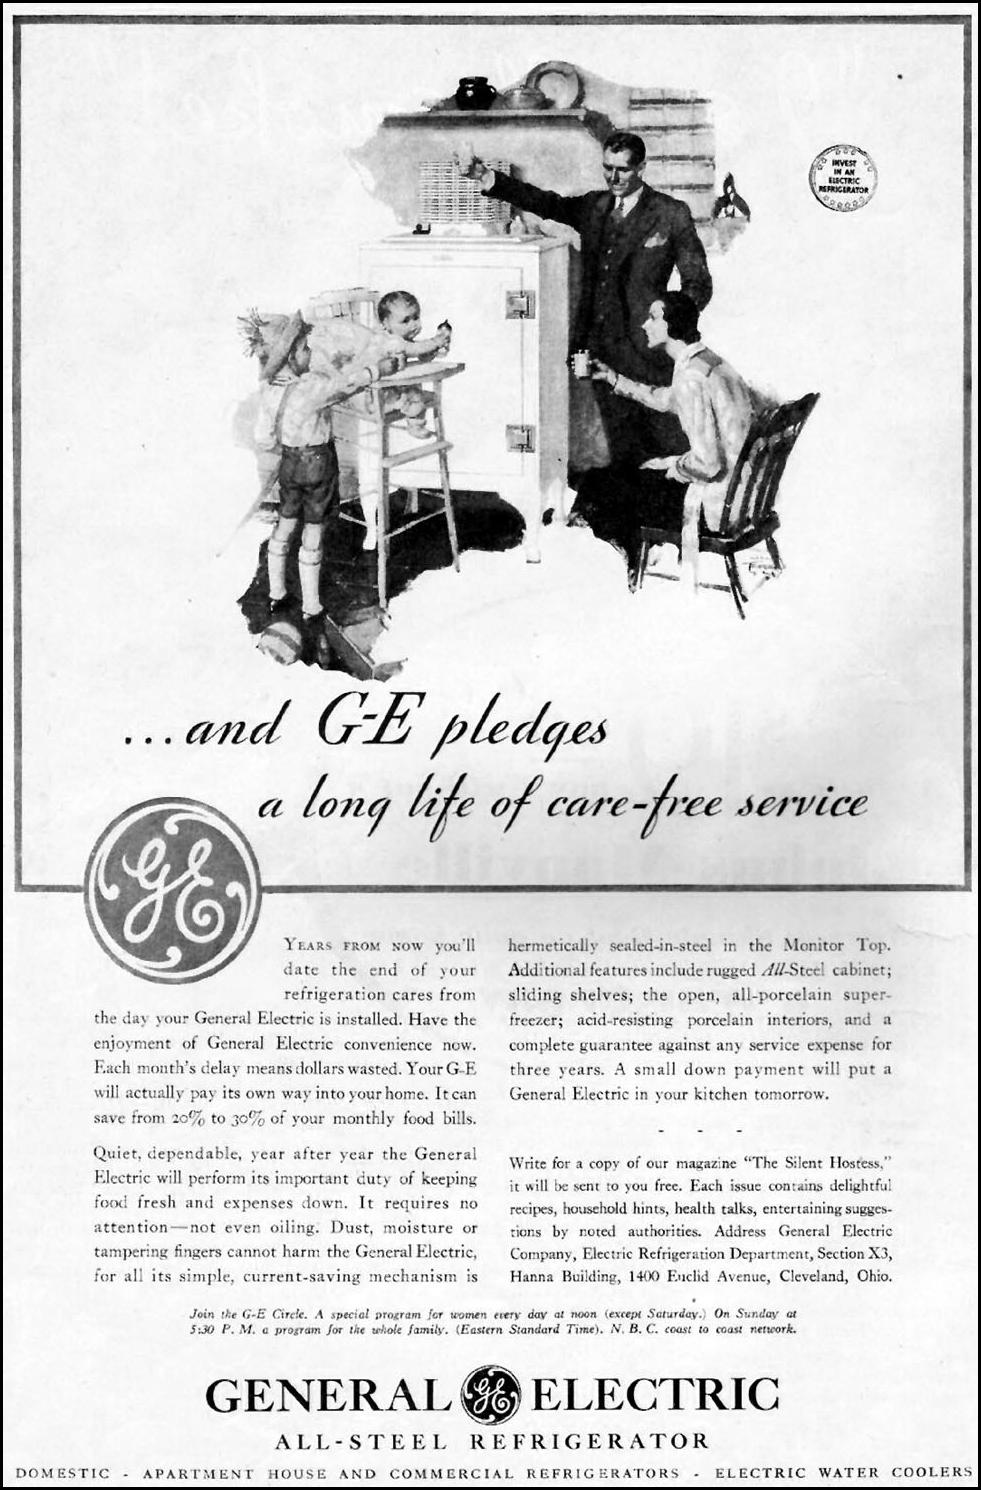 GENERAL ELECTRIC REFRIGERATORS BETTER HOMES AND GARDENS 03/01/1932 p. 6